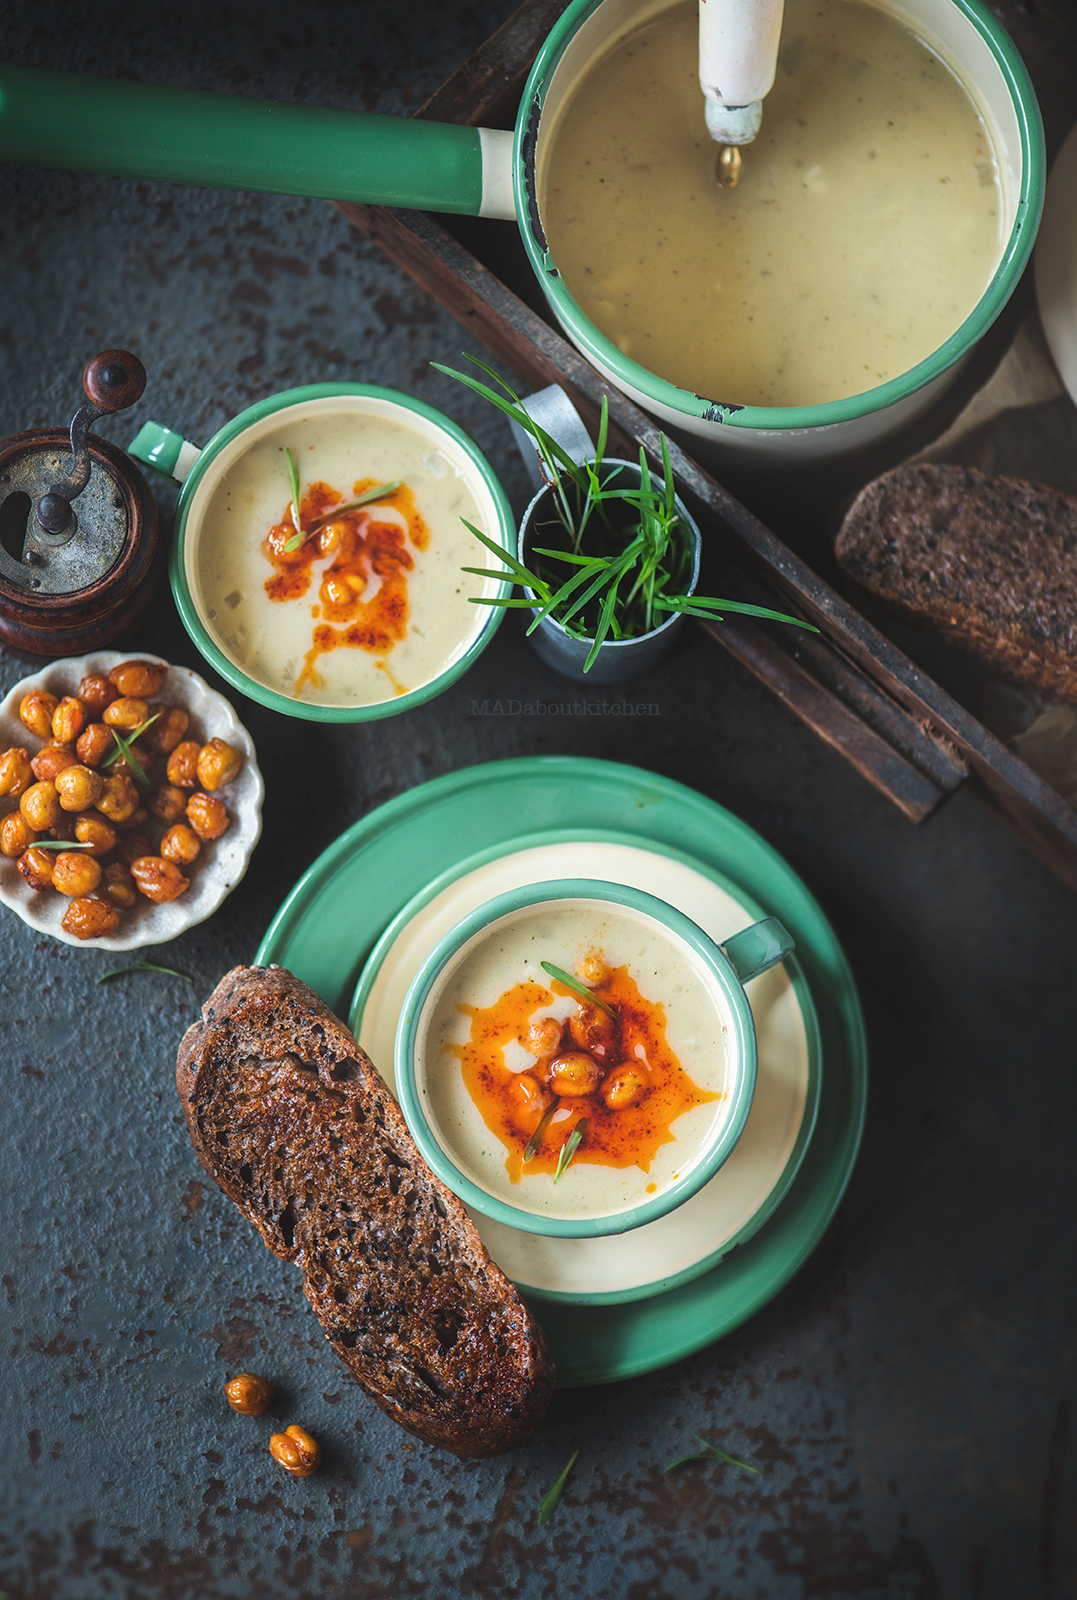 Chickpea soup, topped with roasted chickpea is flavoured with rosemary and garlic. It is creamy, thick, filling and simple to make.